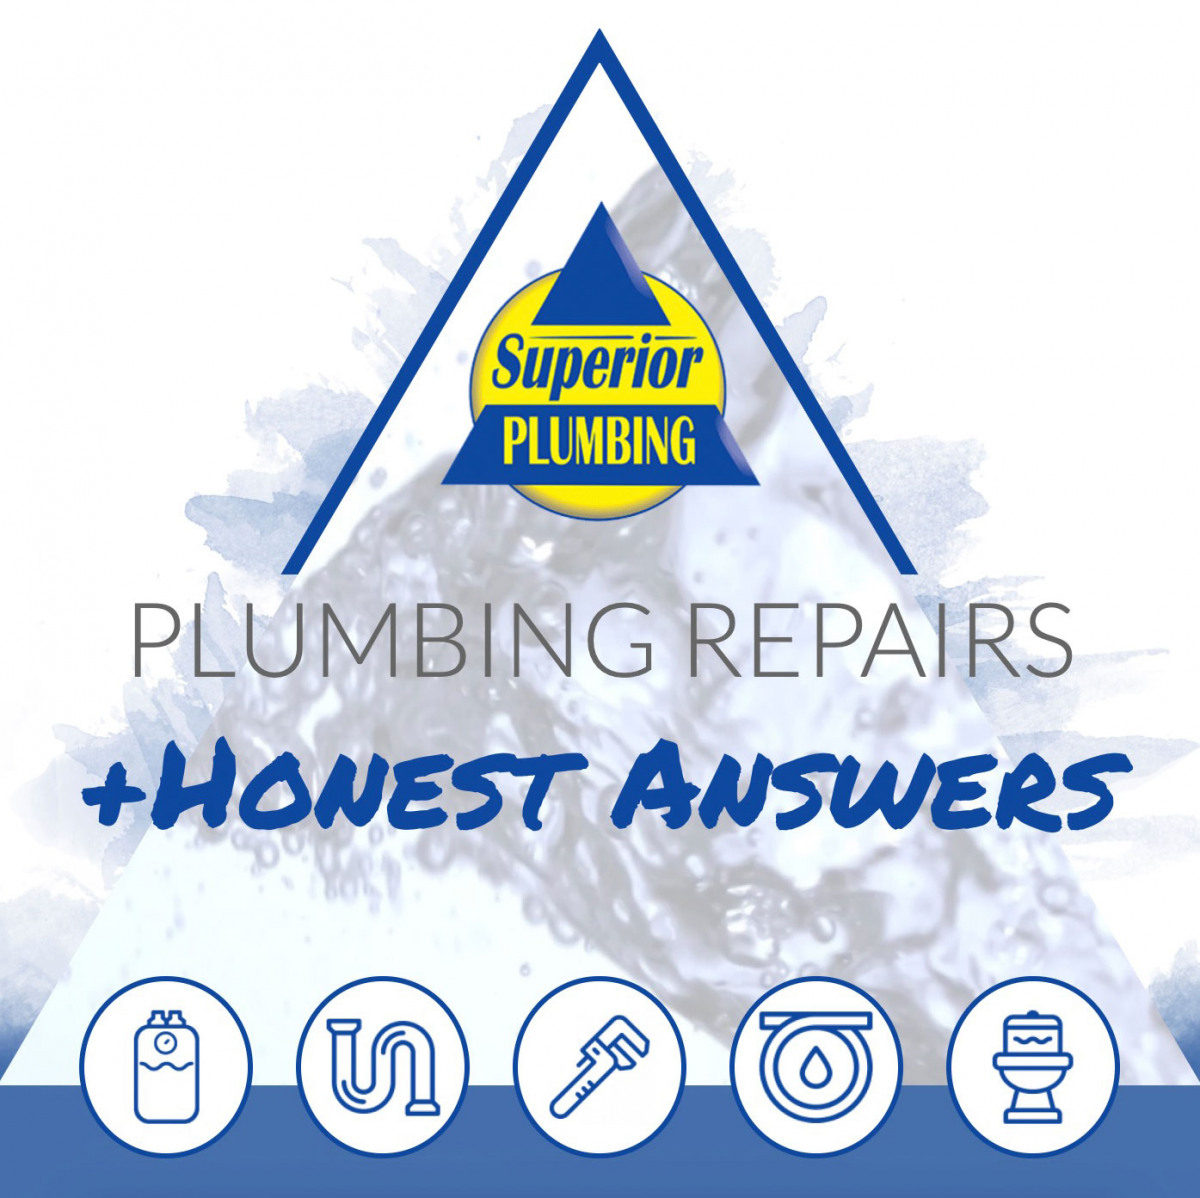 Image of website for Superior Plumbing